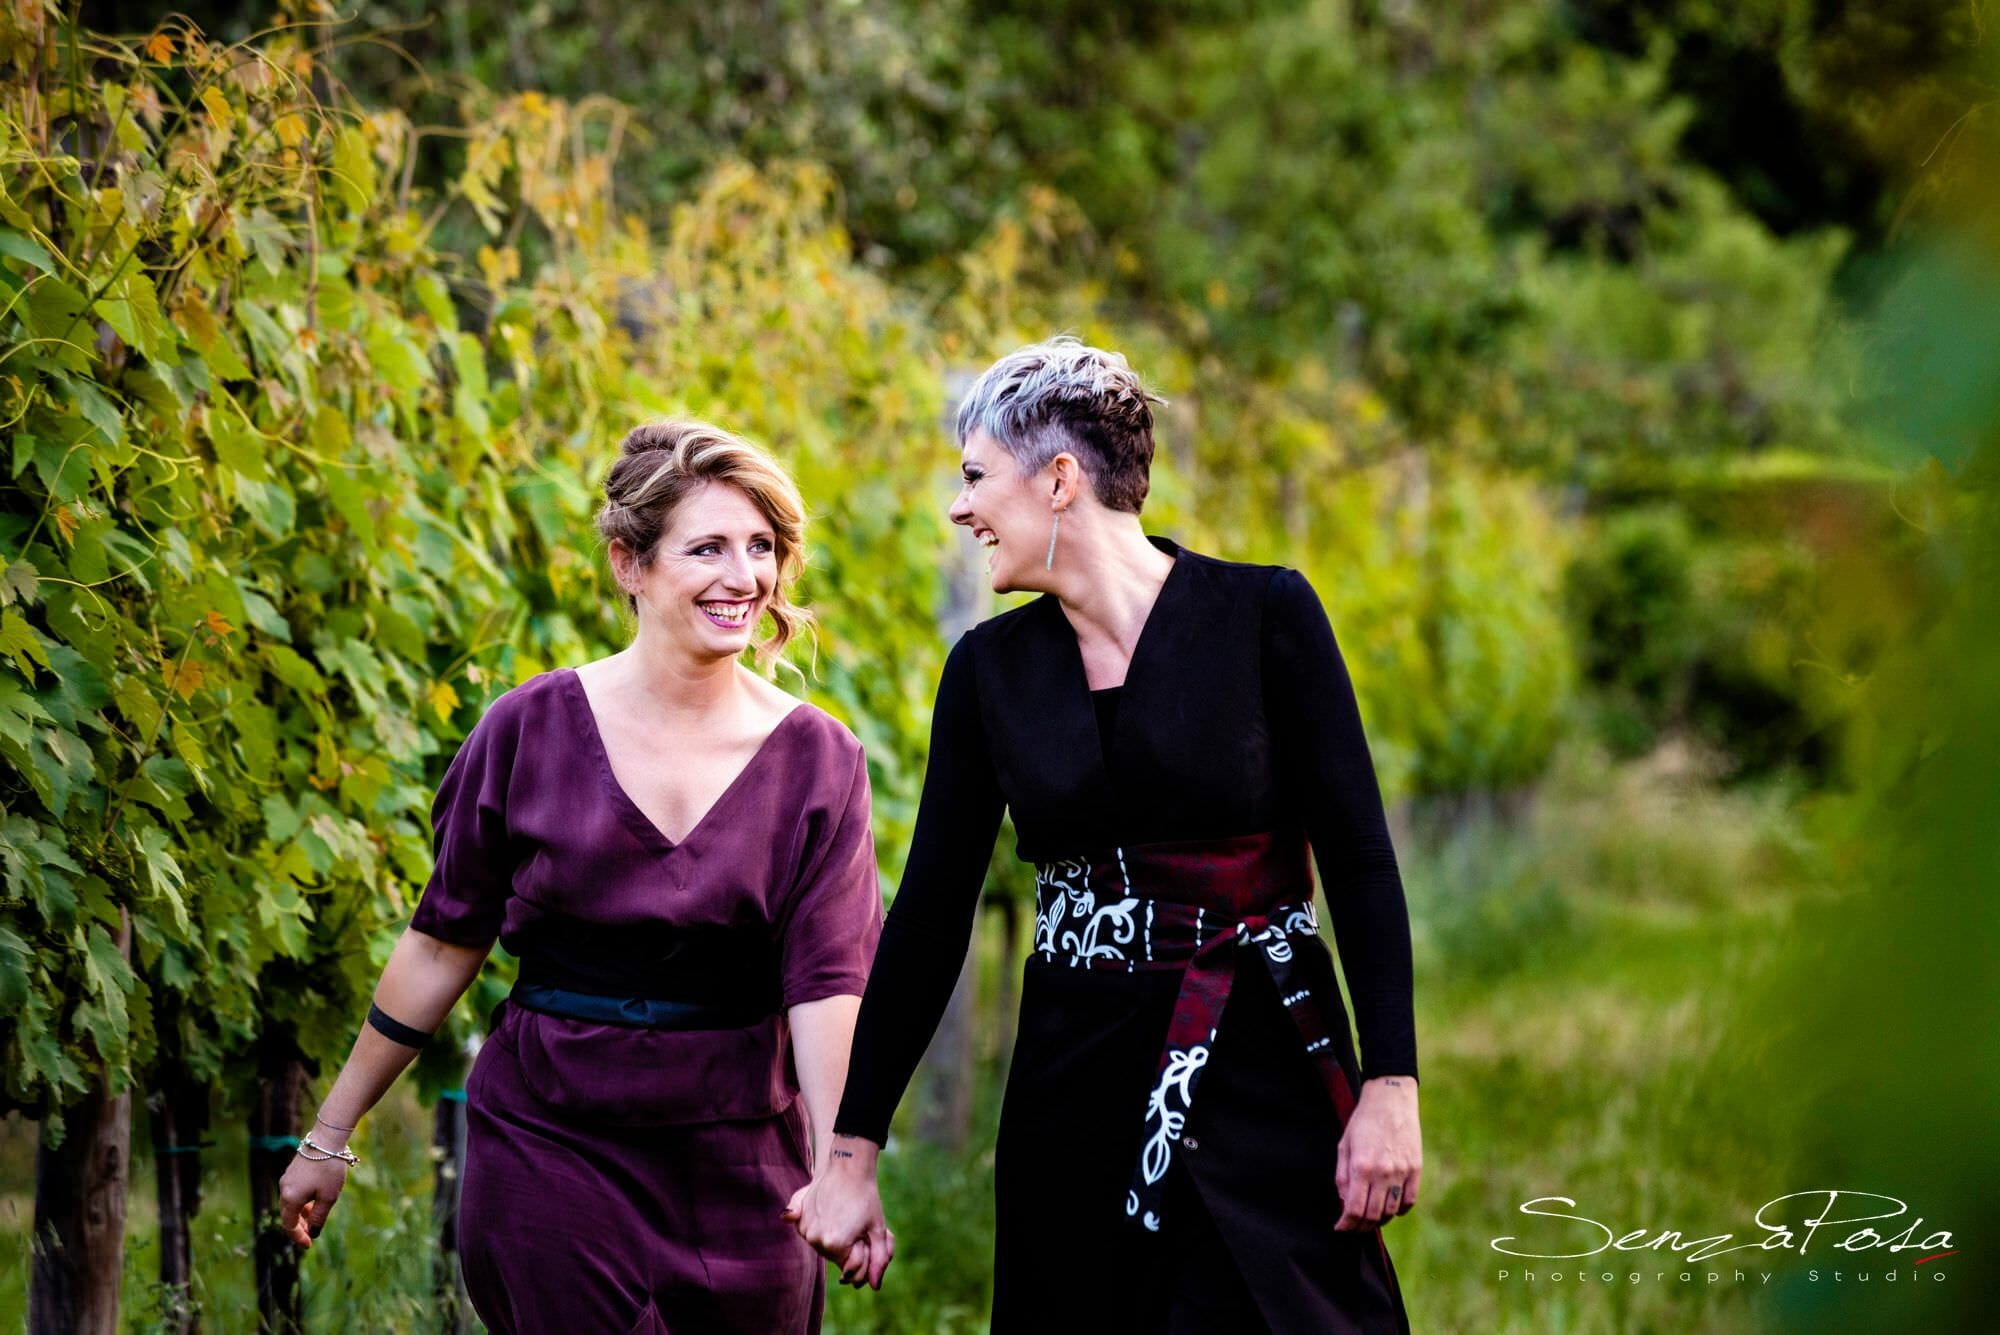 samesex wedding in italy photographer